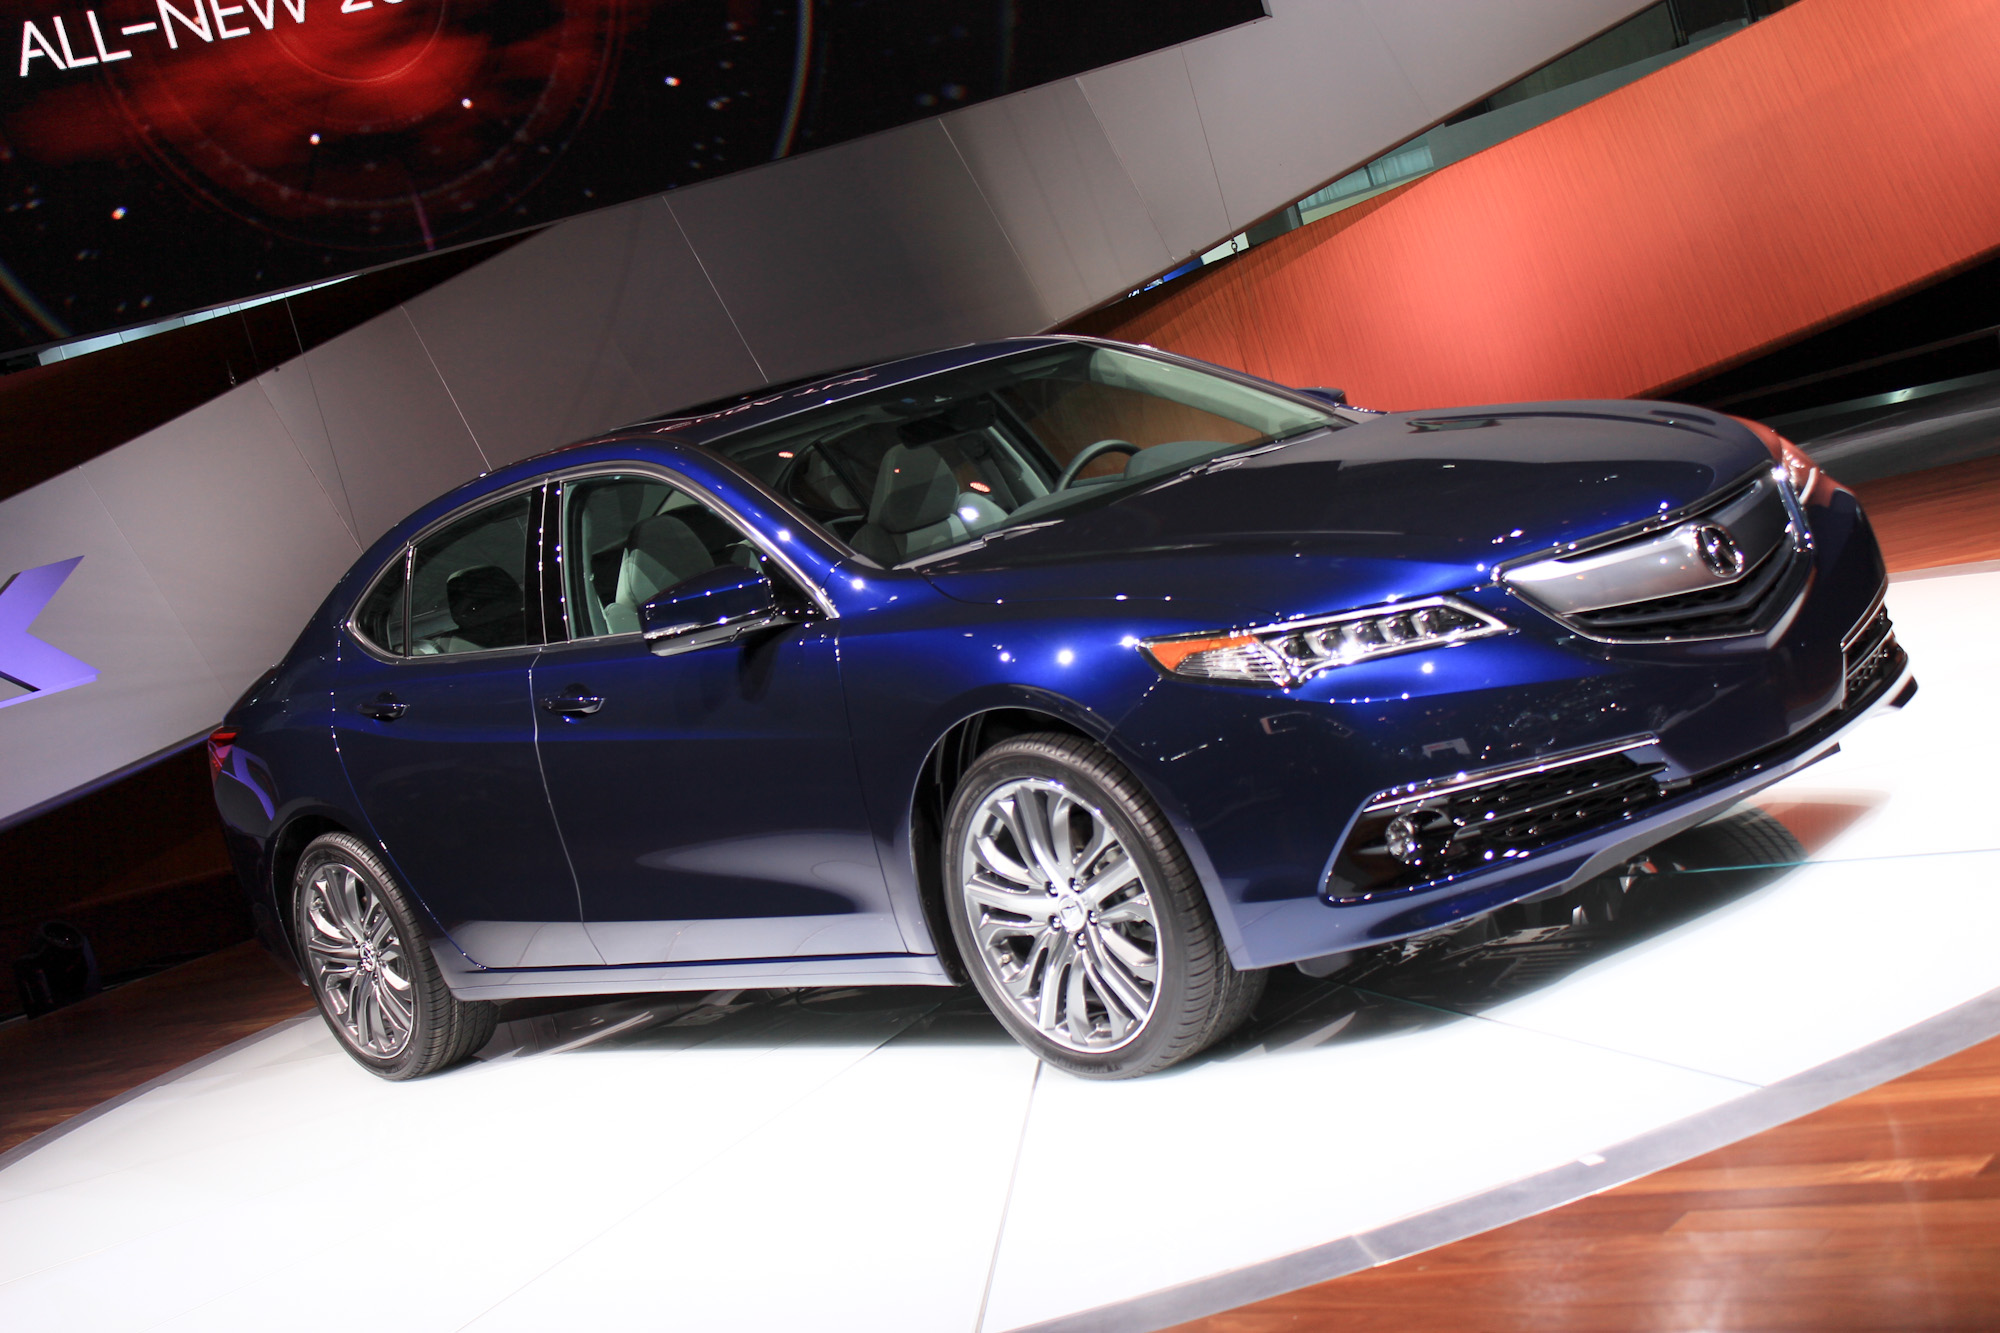 2019 Acura TLX Car Photos Catalog 2019